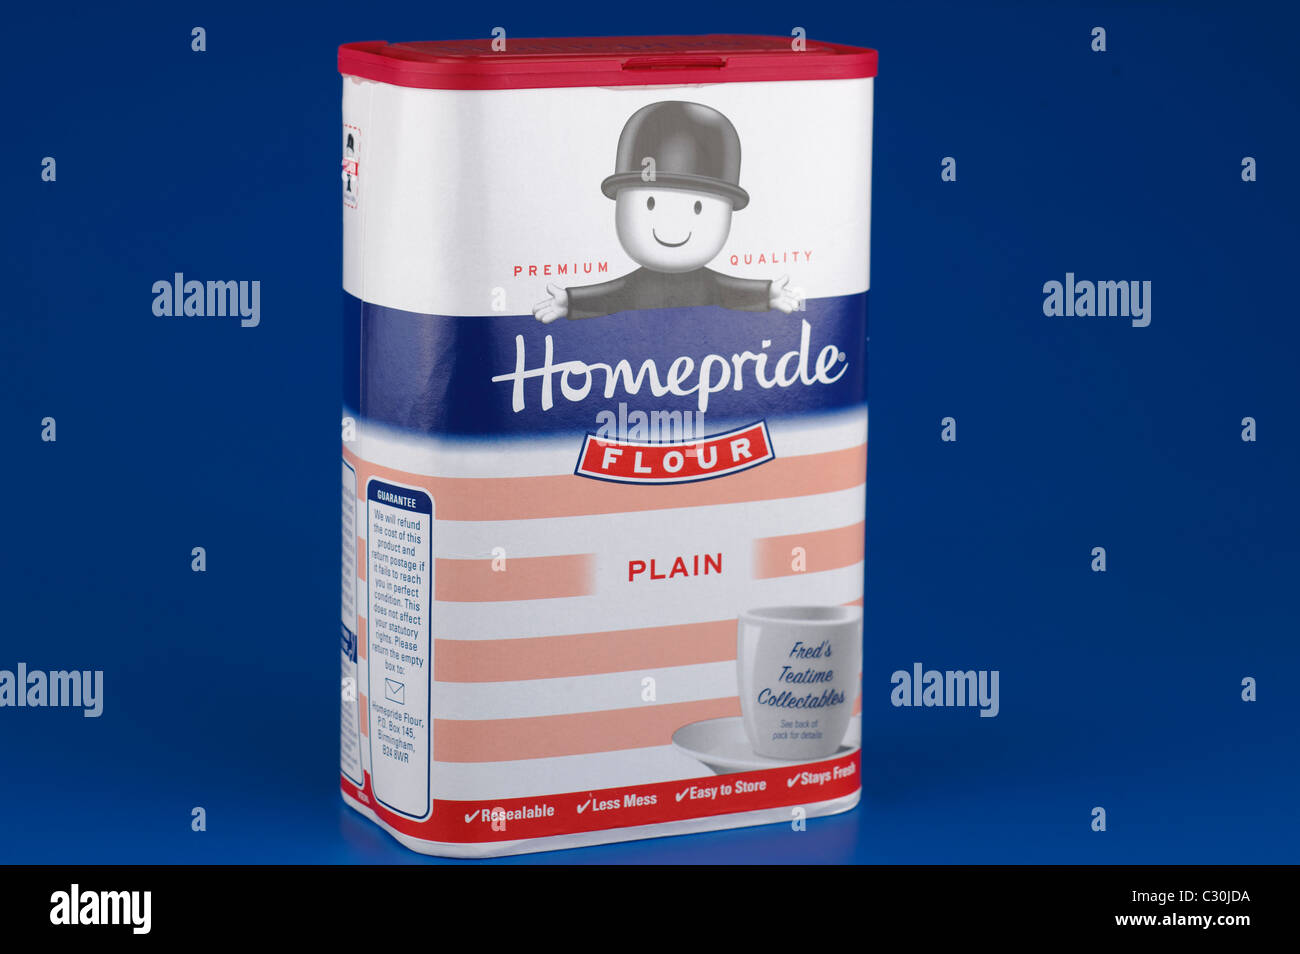 Resealable container of Homepride Plain flour - Stock Image